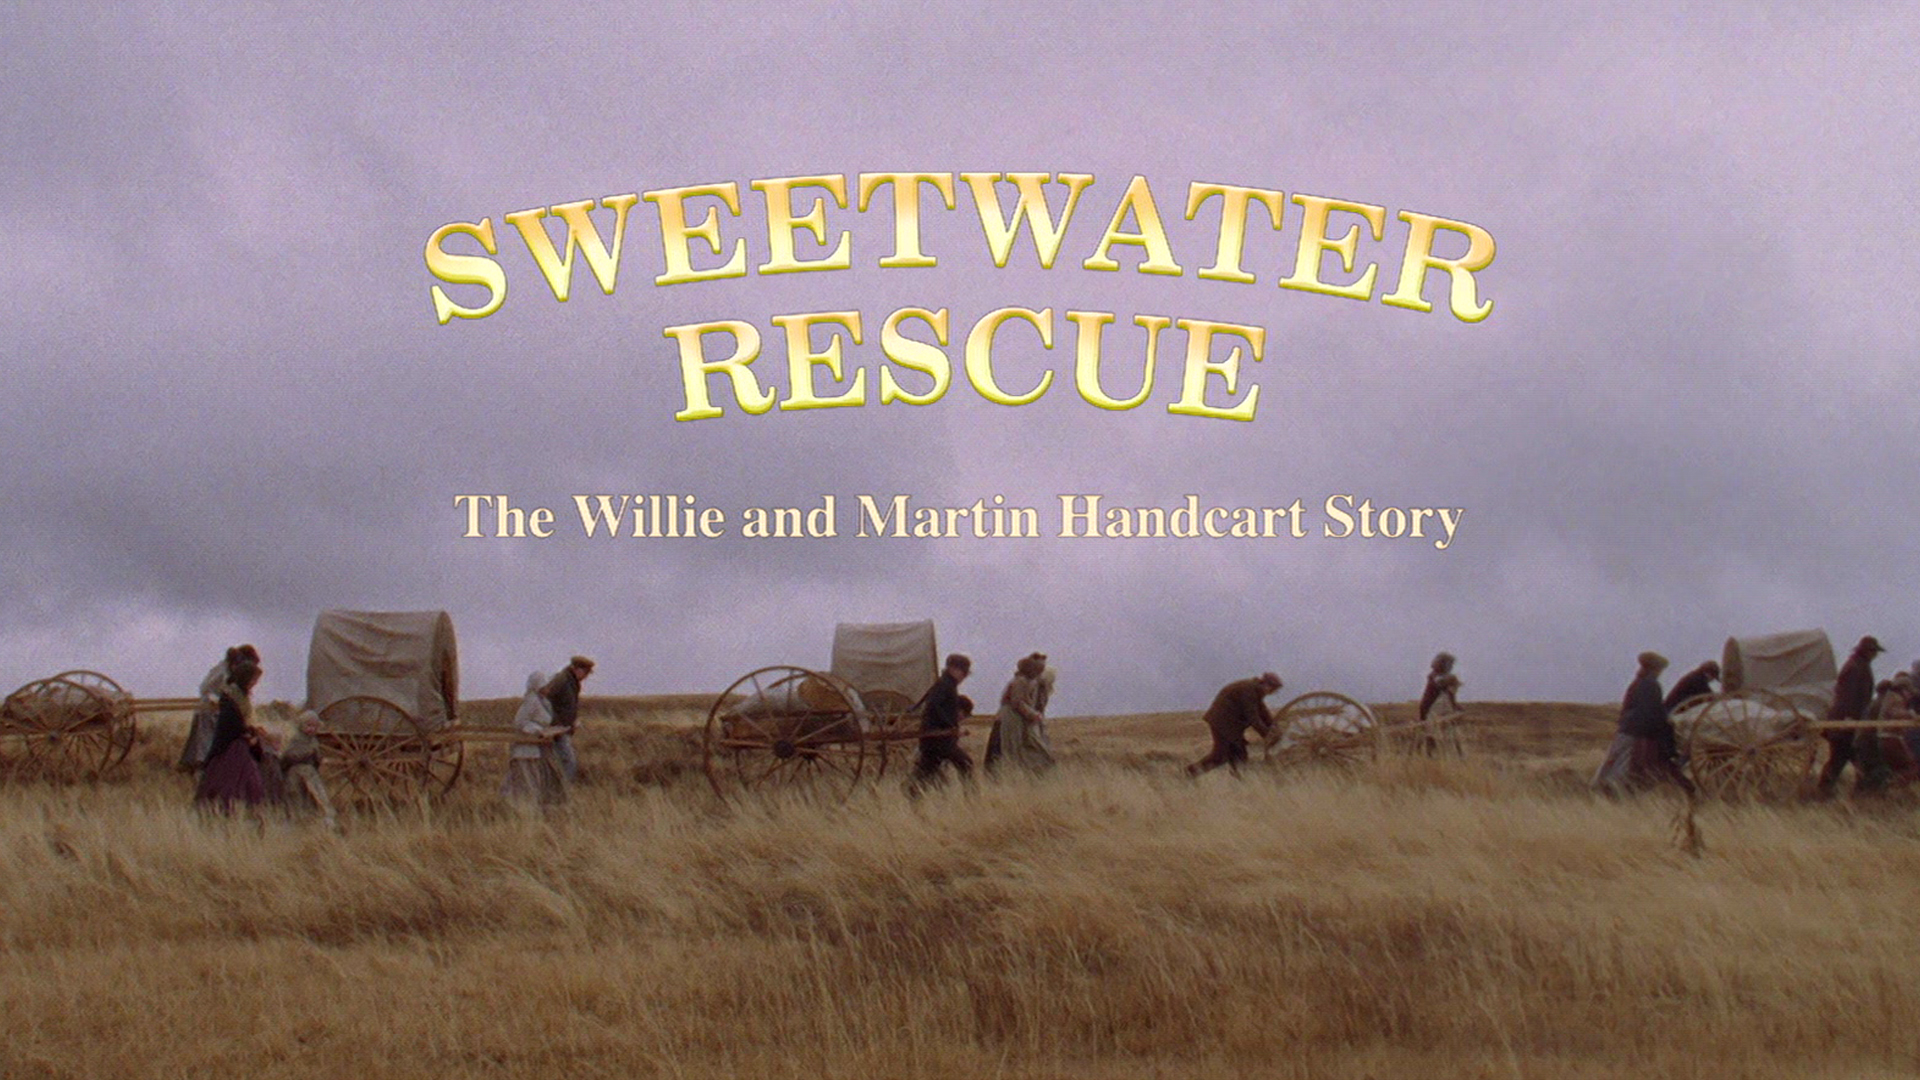 Sweetwater Rescue: The Willie and Martin Handcart Story